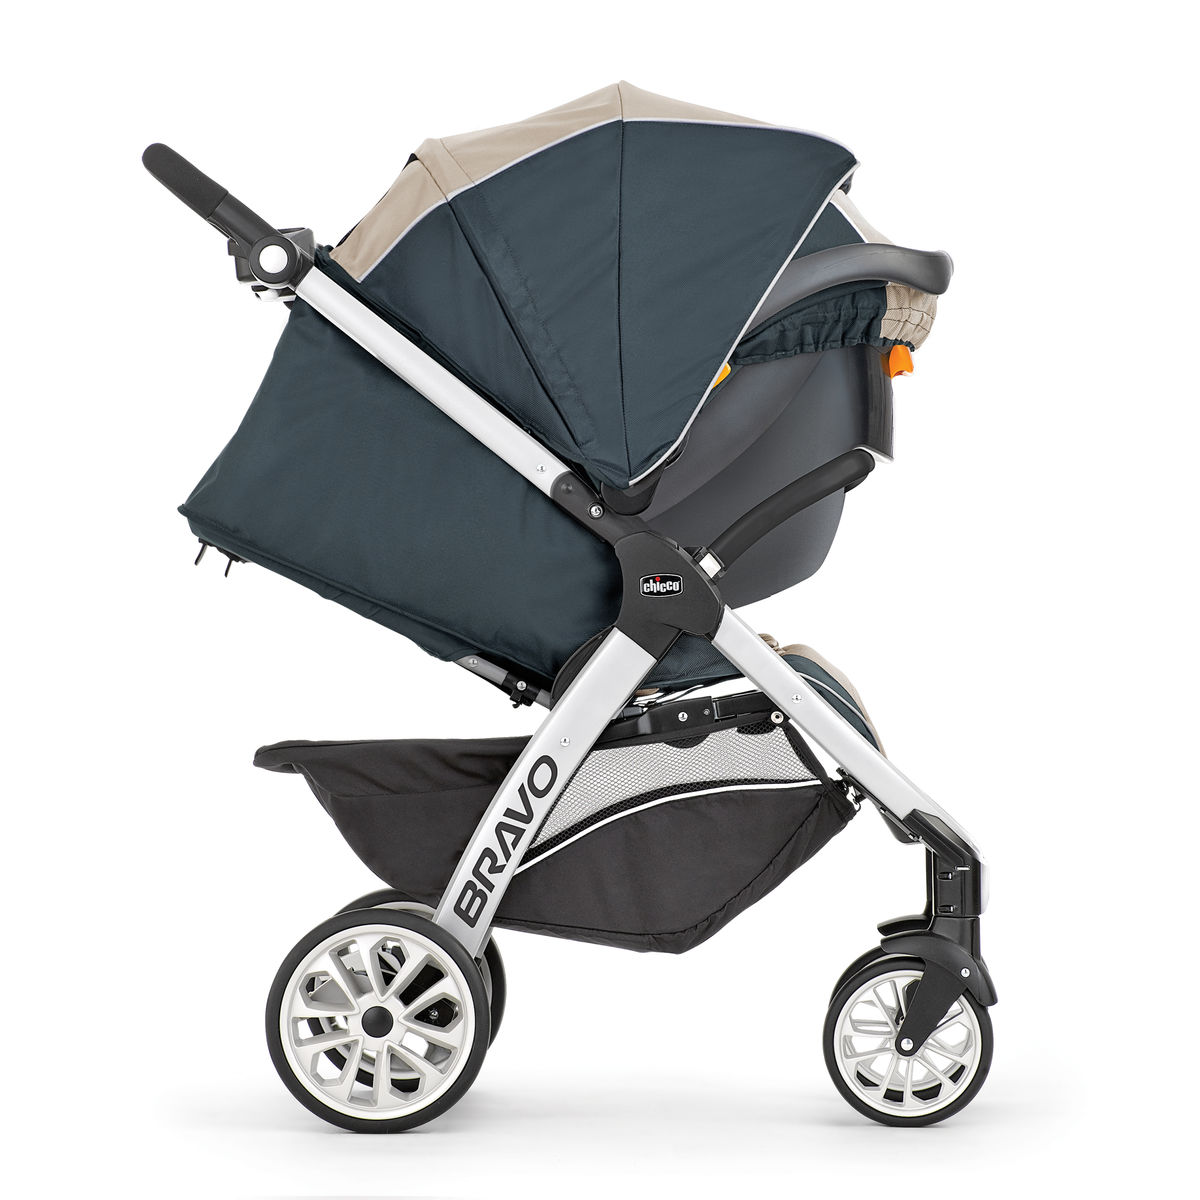 CH4207976151N0 Chicco Bravo Travel System W Tray-Orion (4)